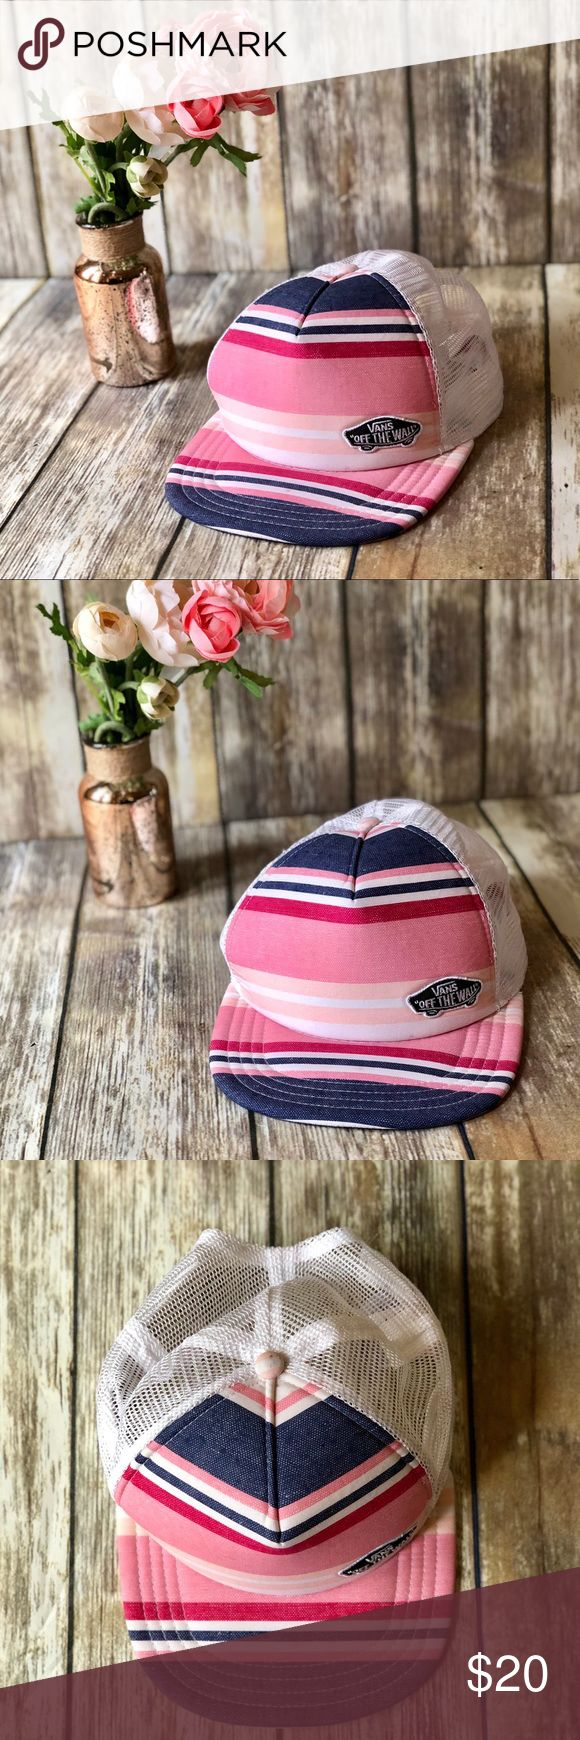 VANS Pink, Blue & White Striped Straight Bill Hat VANS Pink, Blue & White Striped Straight Bill Hat.  One size fits all. Mesh back. PLEASE NOTE: There is some make-up under the bill where the forehead goes (see last photo). Other than that that it is in great condition. Smoke free home. Vans Accessories Hats